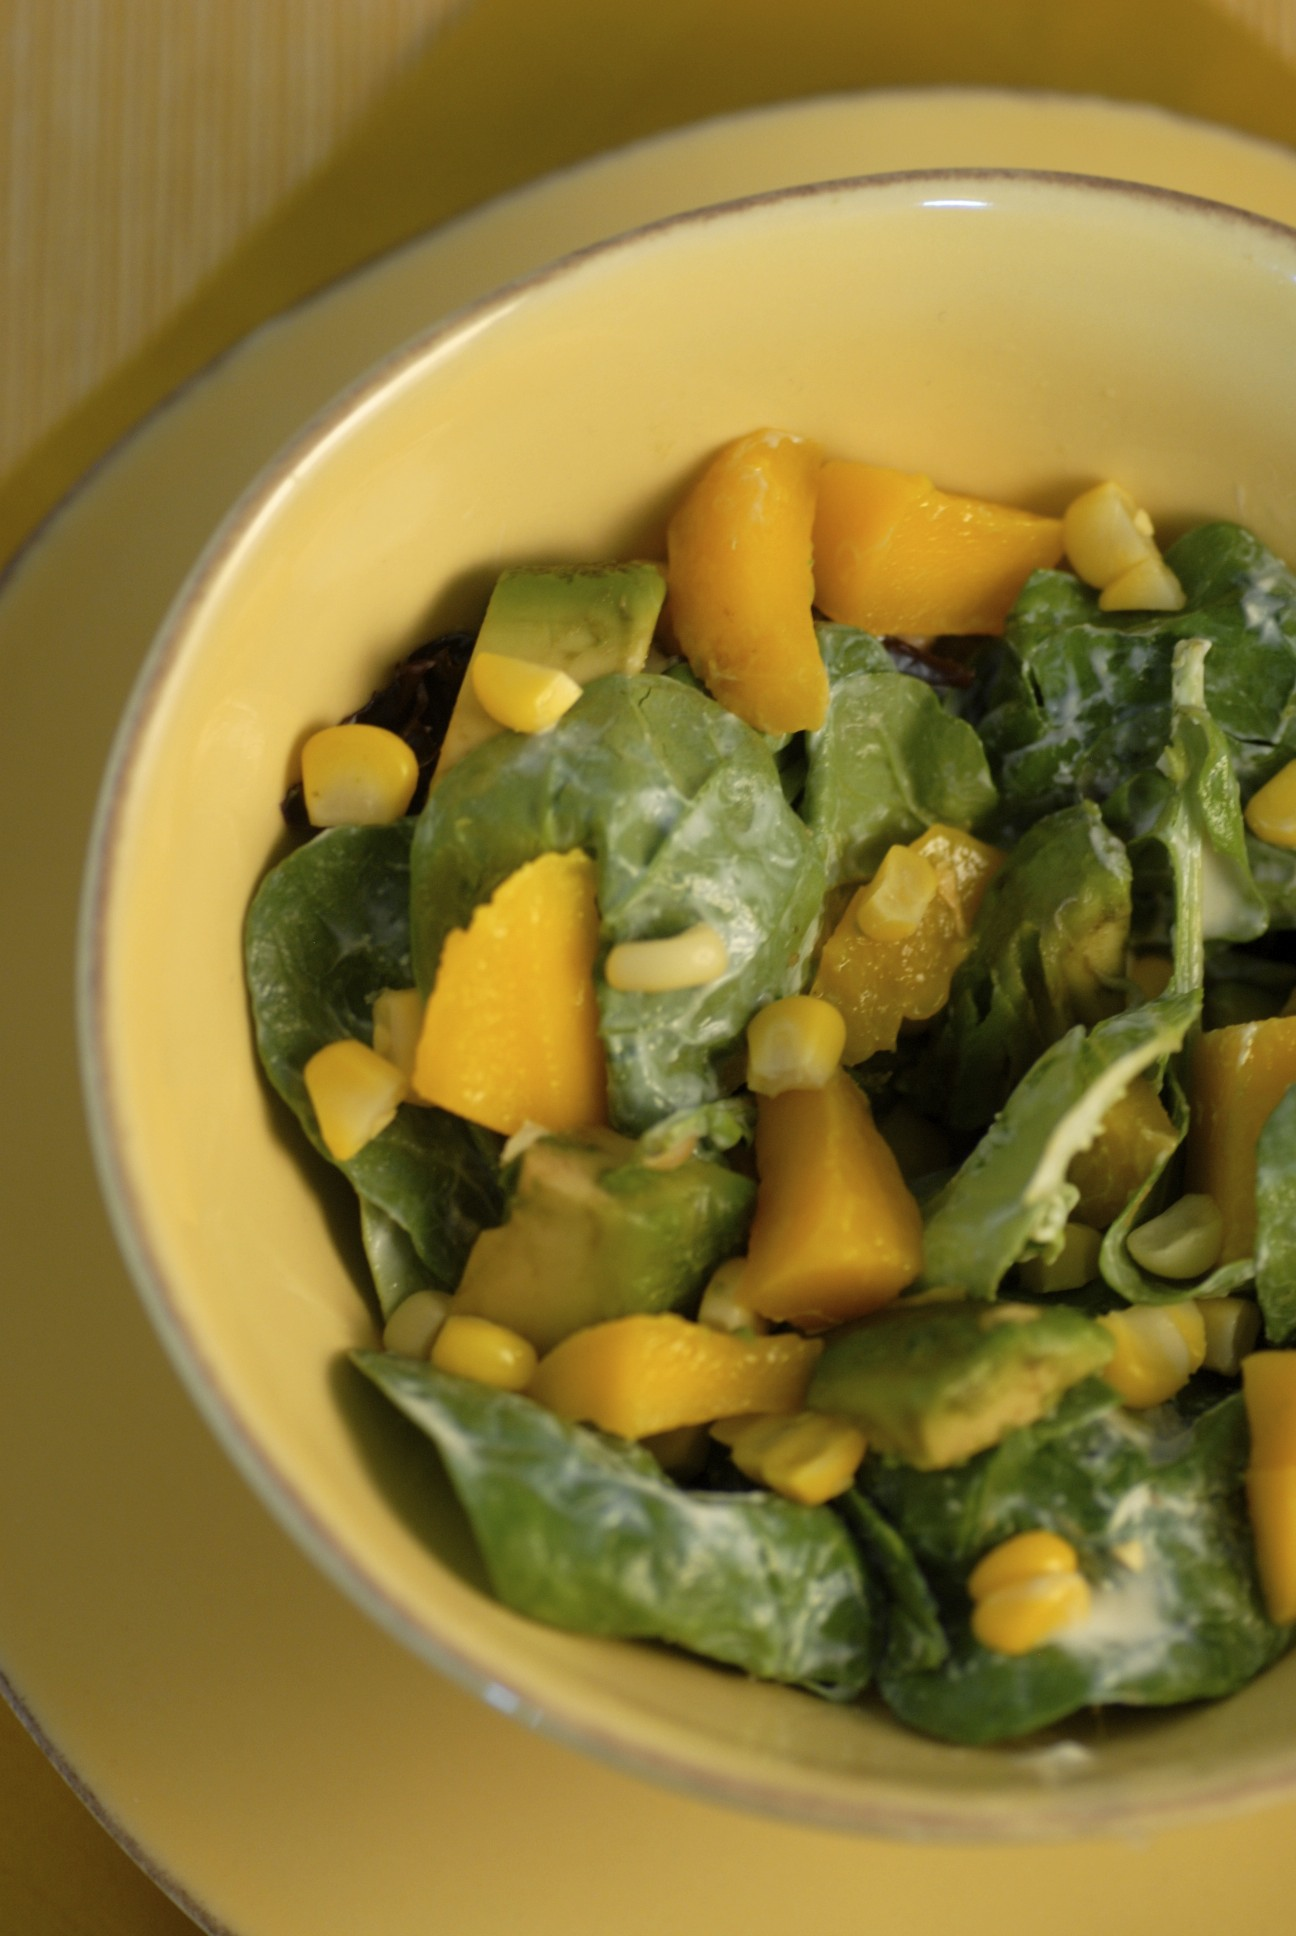 Mango, Avocado and Roasted Corn Salad with Creamy Ginger Dressing